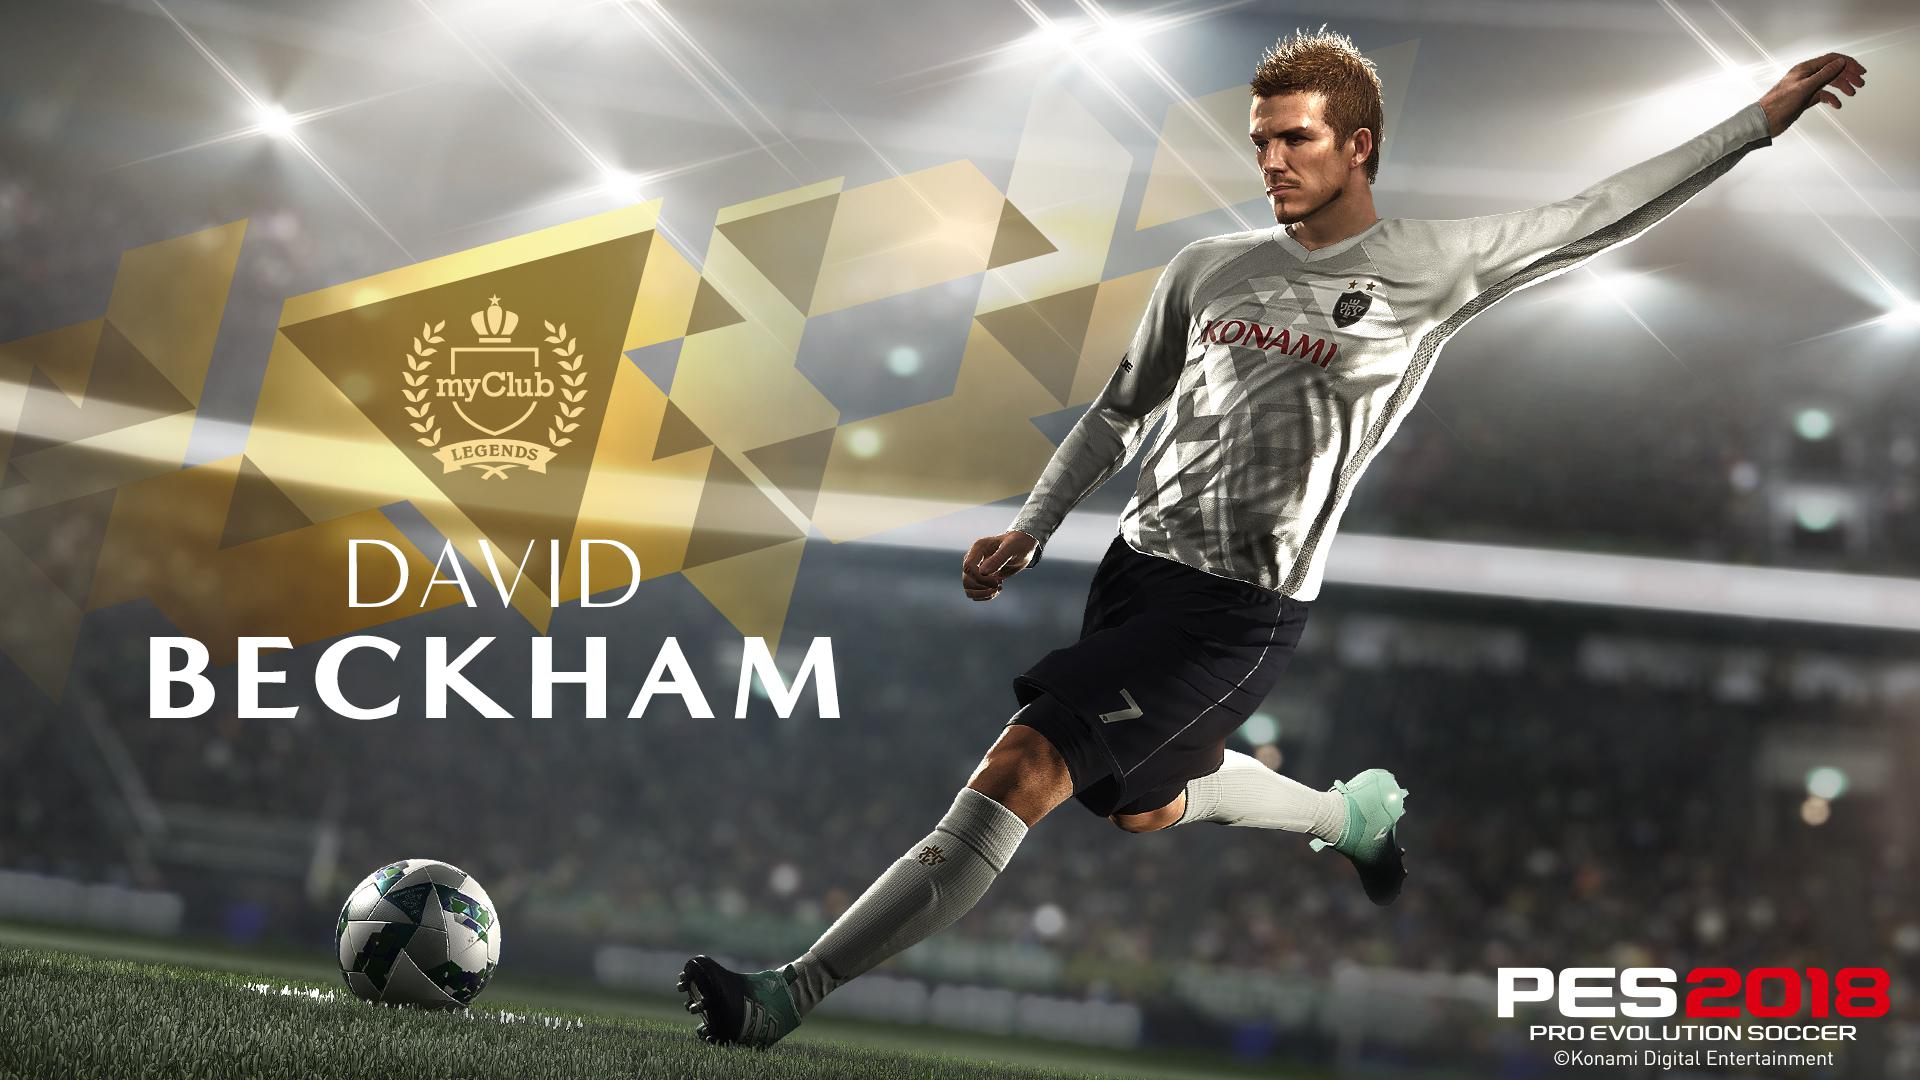 There will be five versions of the star available to play with in the upcoming PES 2018